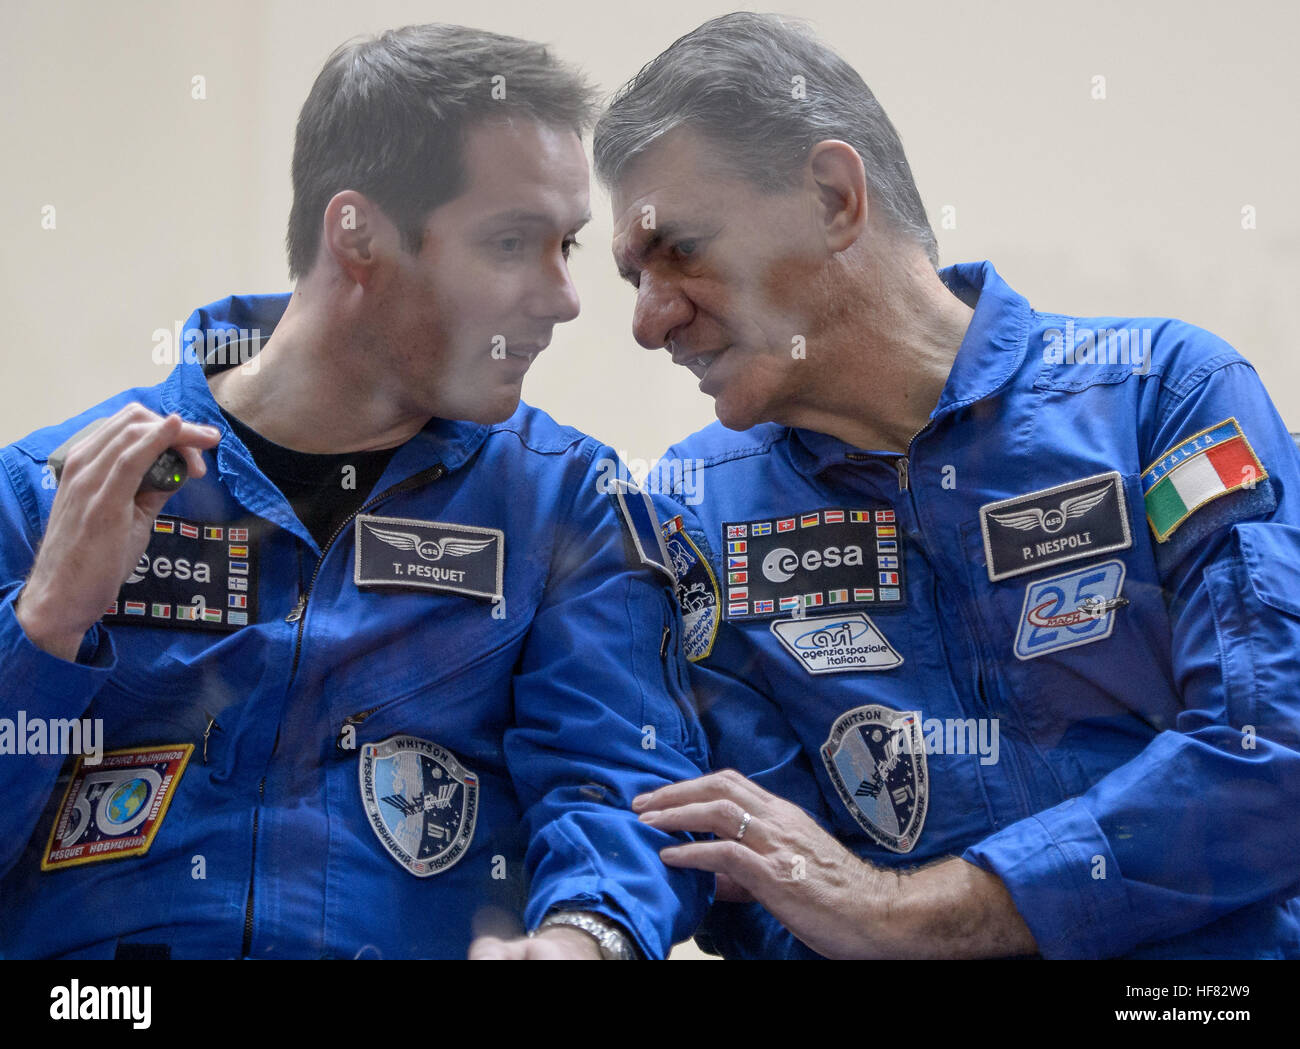 Expedition 50 ESA astronaut Thomas Pesquet, left, and backup crew member ESA astronaut Paolo Nespoli are seen in - Stock Image